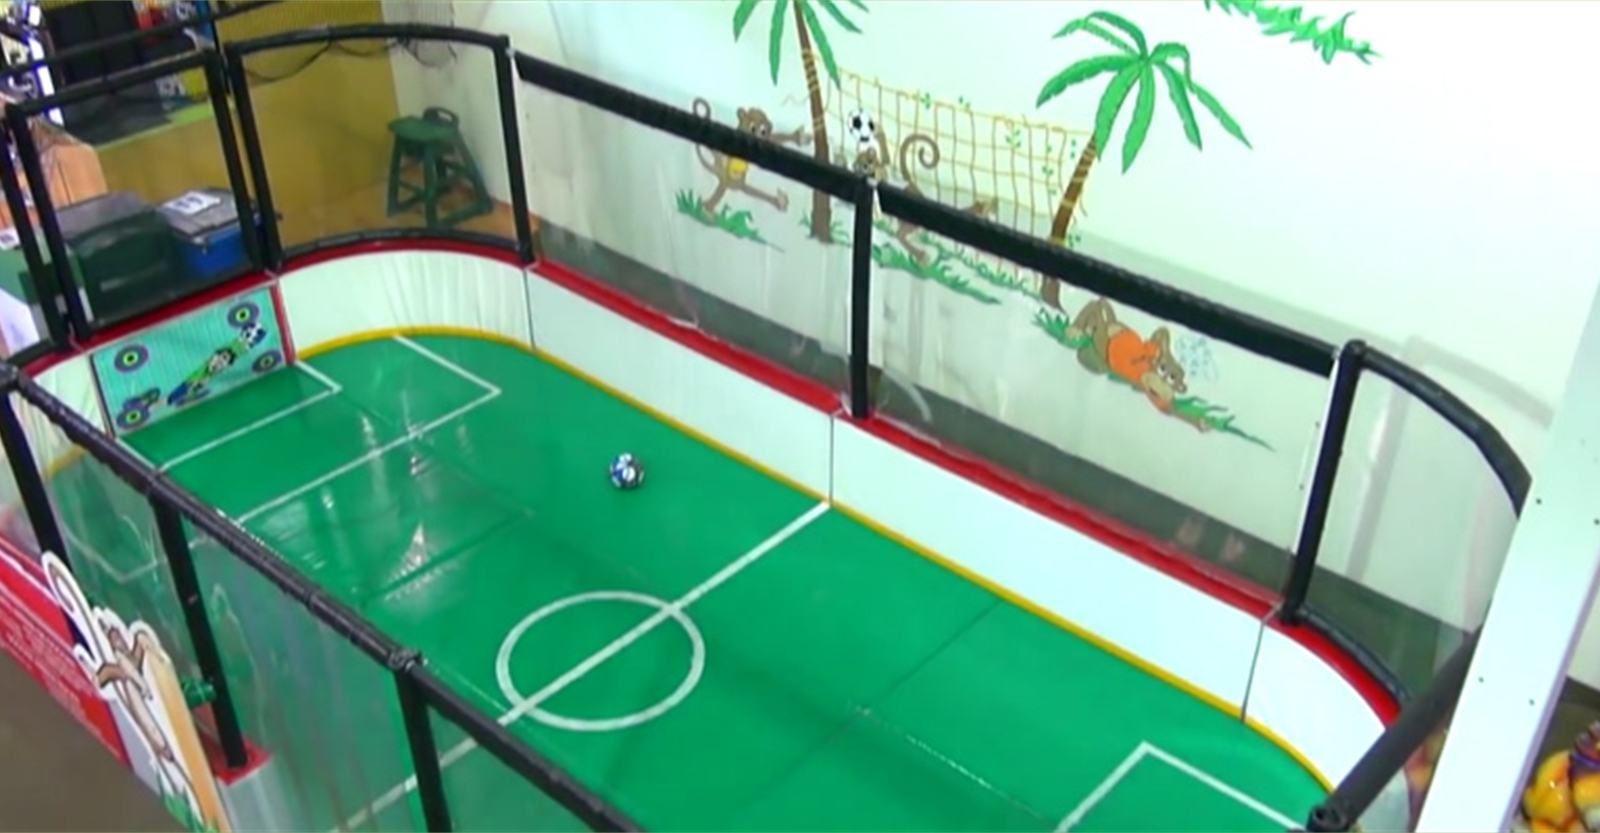 A mini soccer arena for younger children